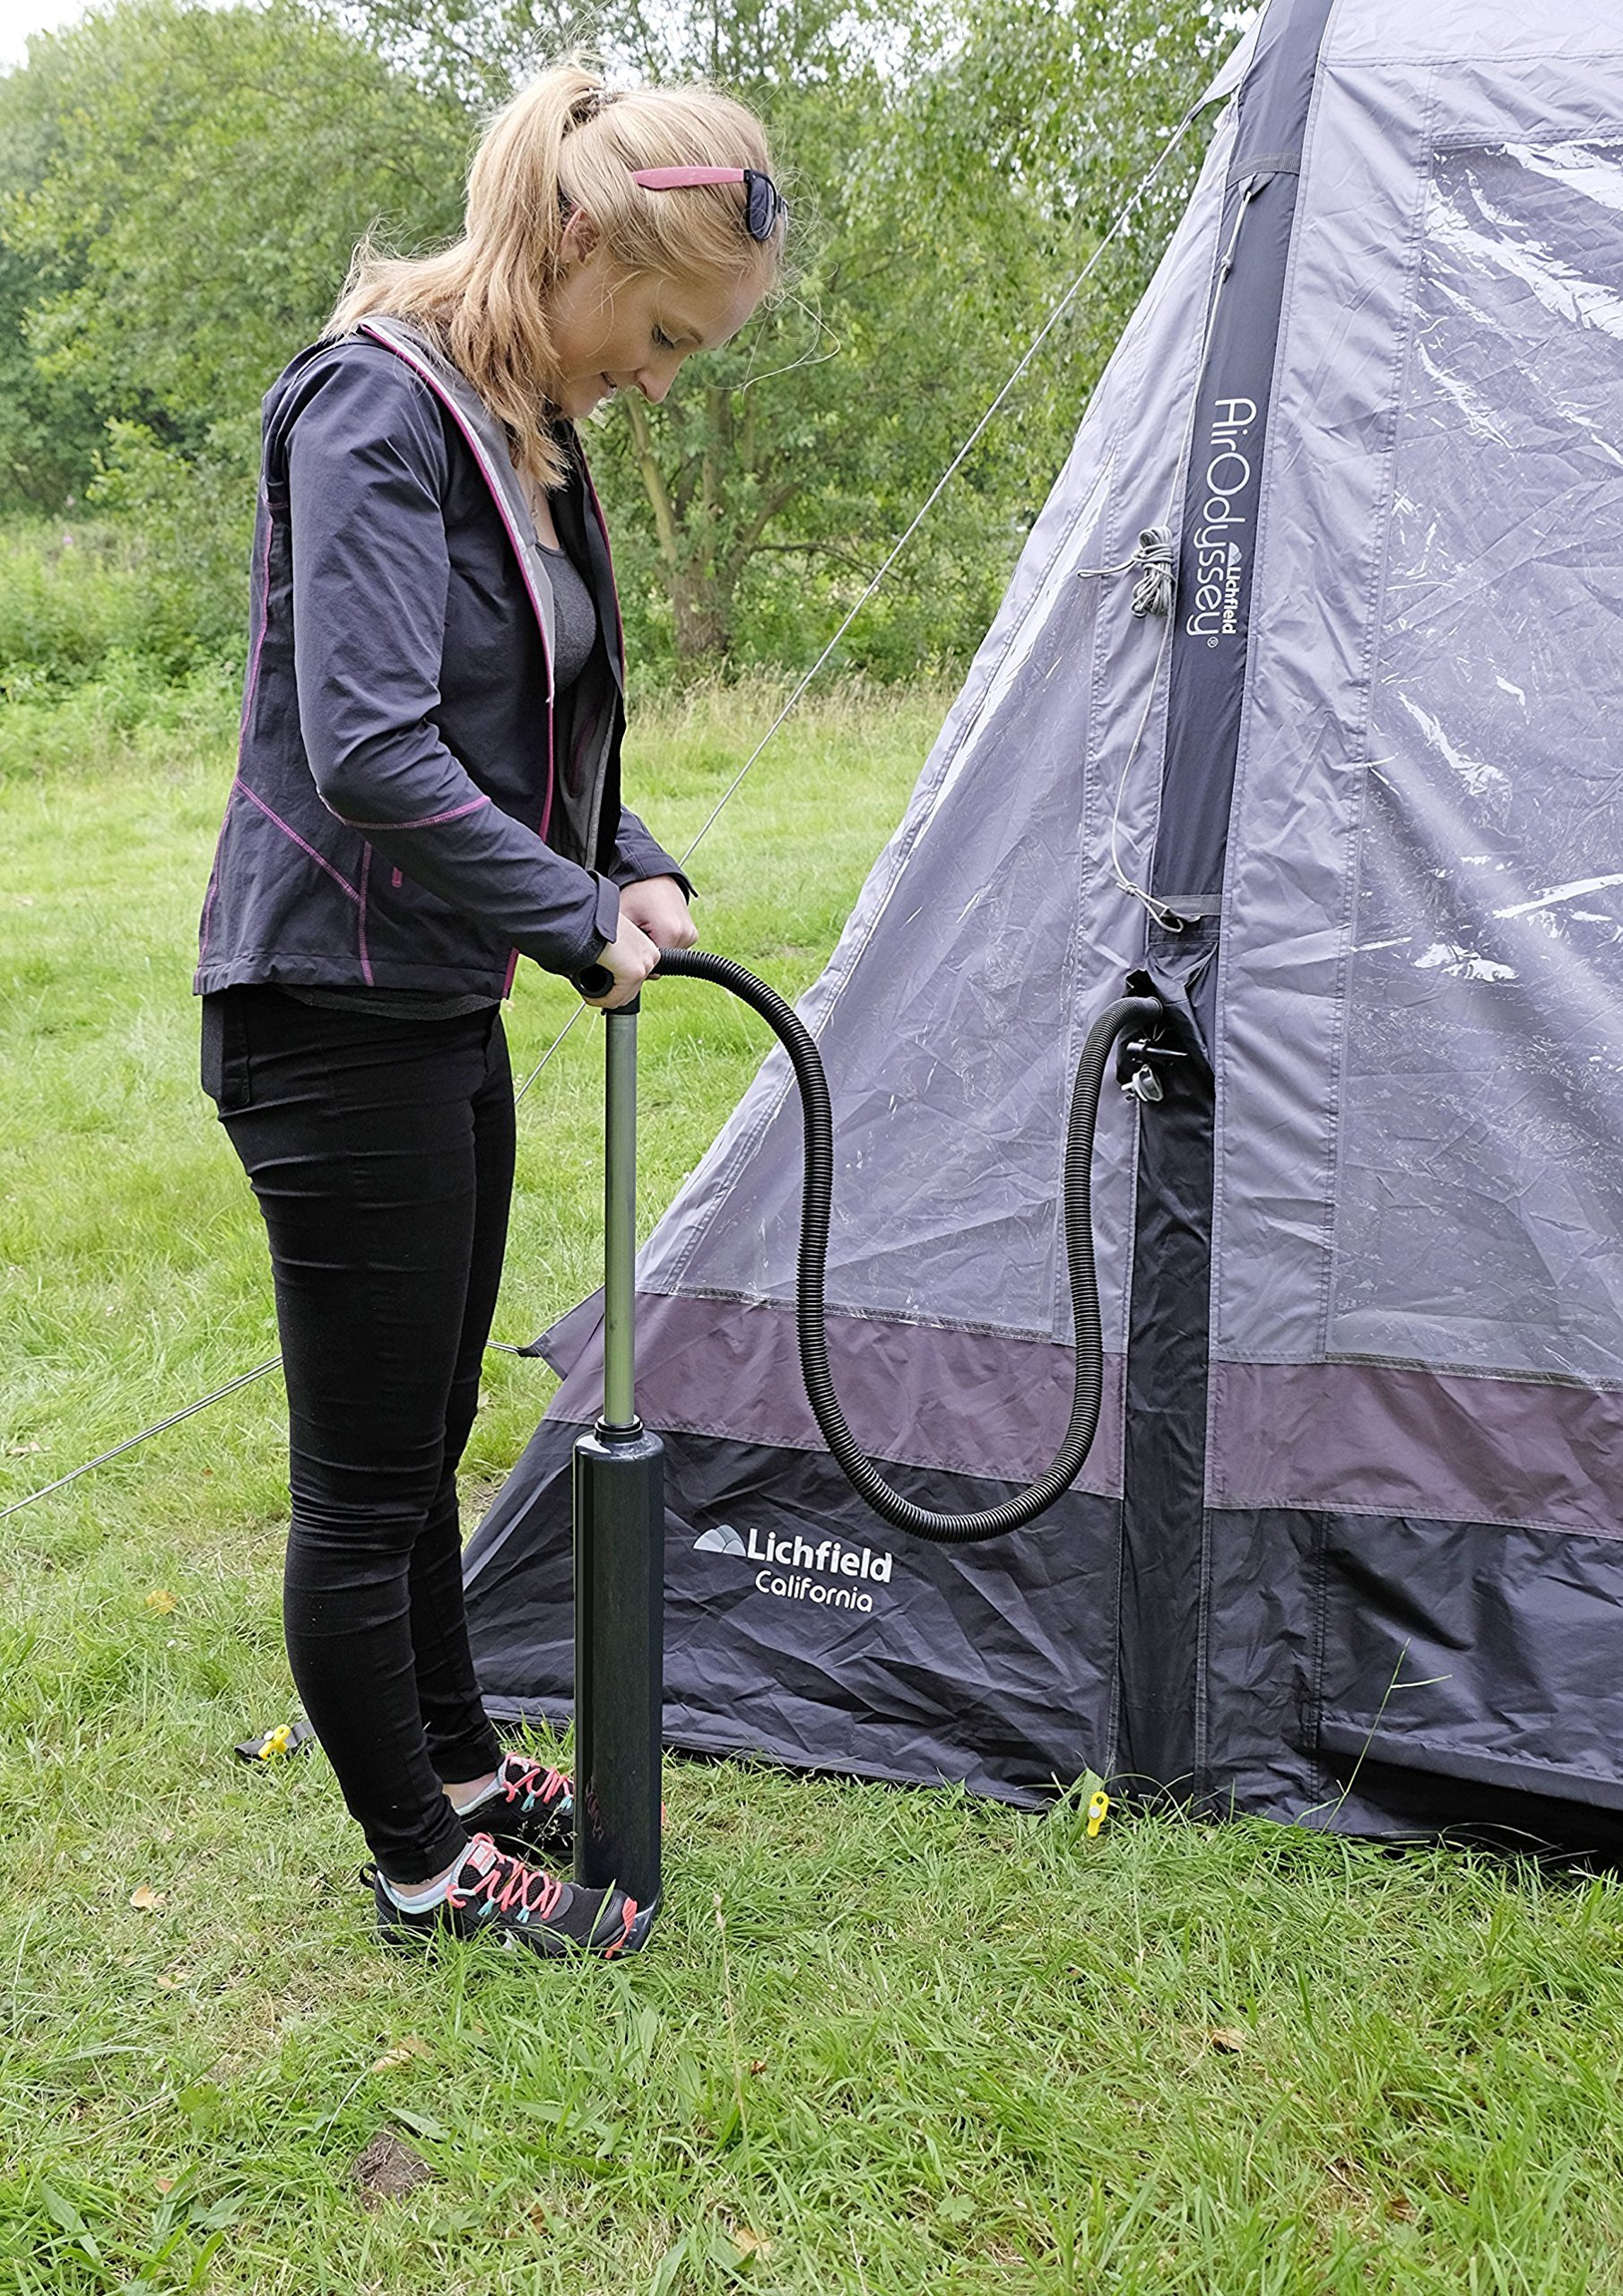 Lichfield California Drive-Away Air Awning Excalibur Low